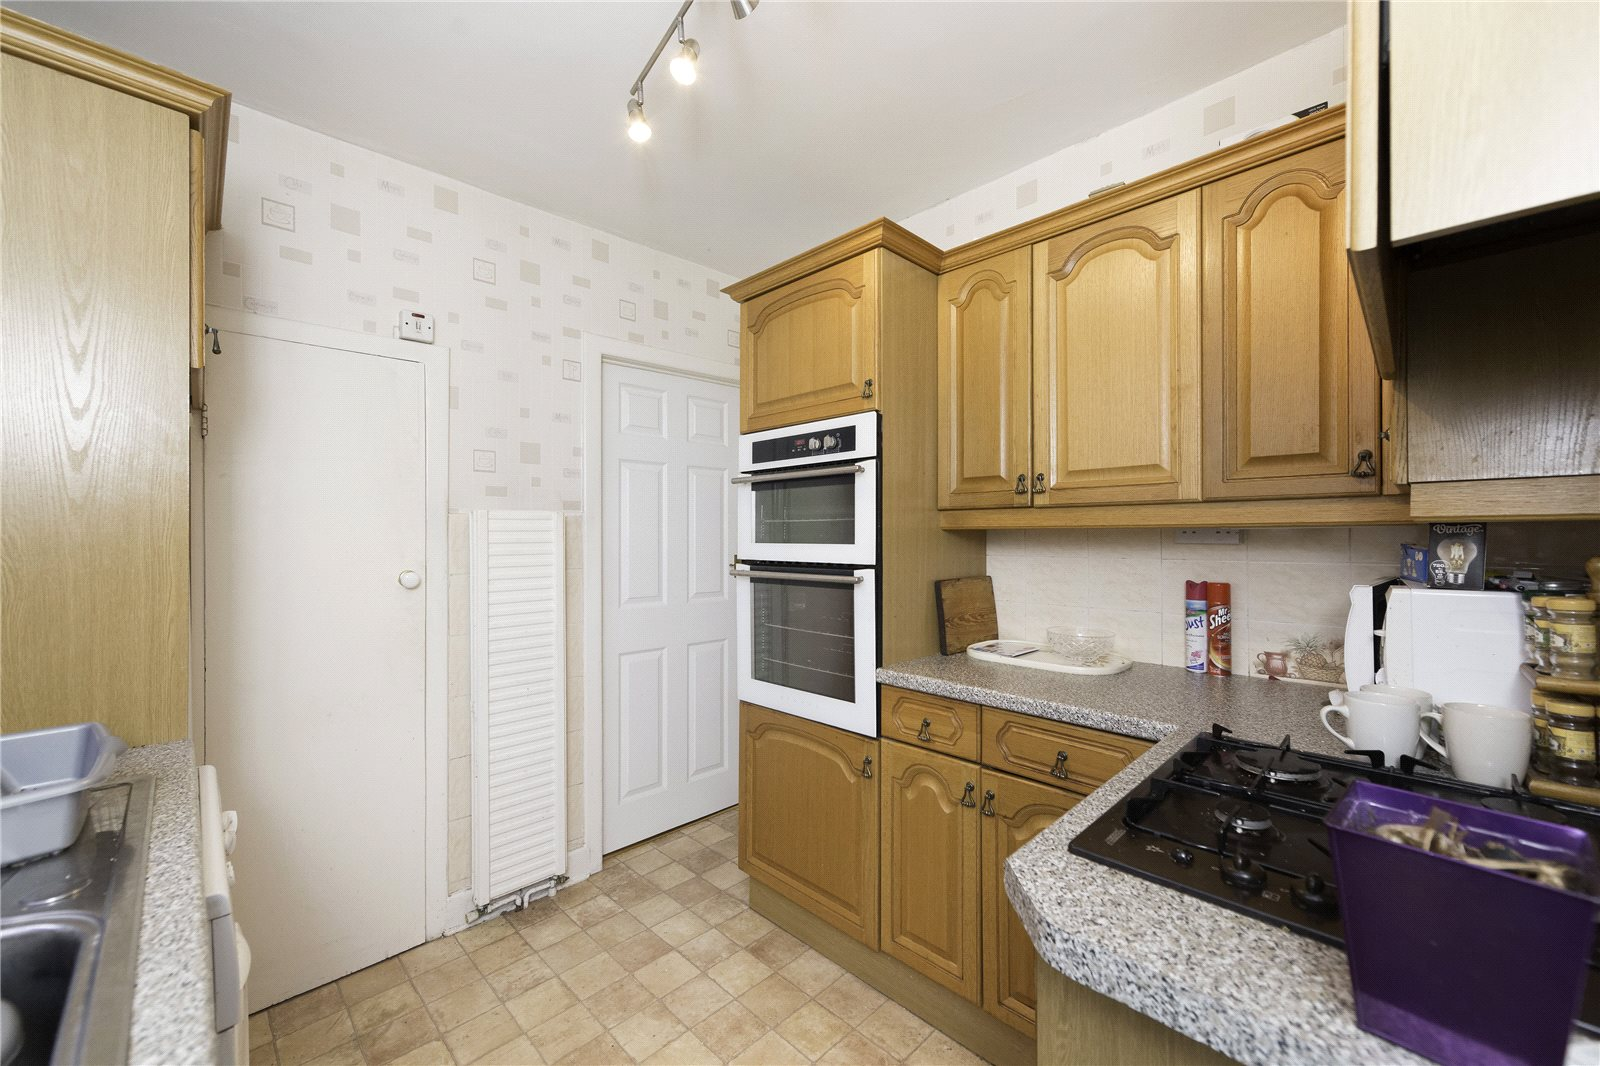 Whitegates Bramley 3 Bedroom House For Sale In Carlton